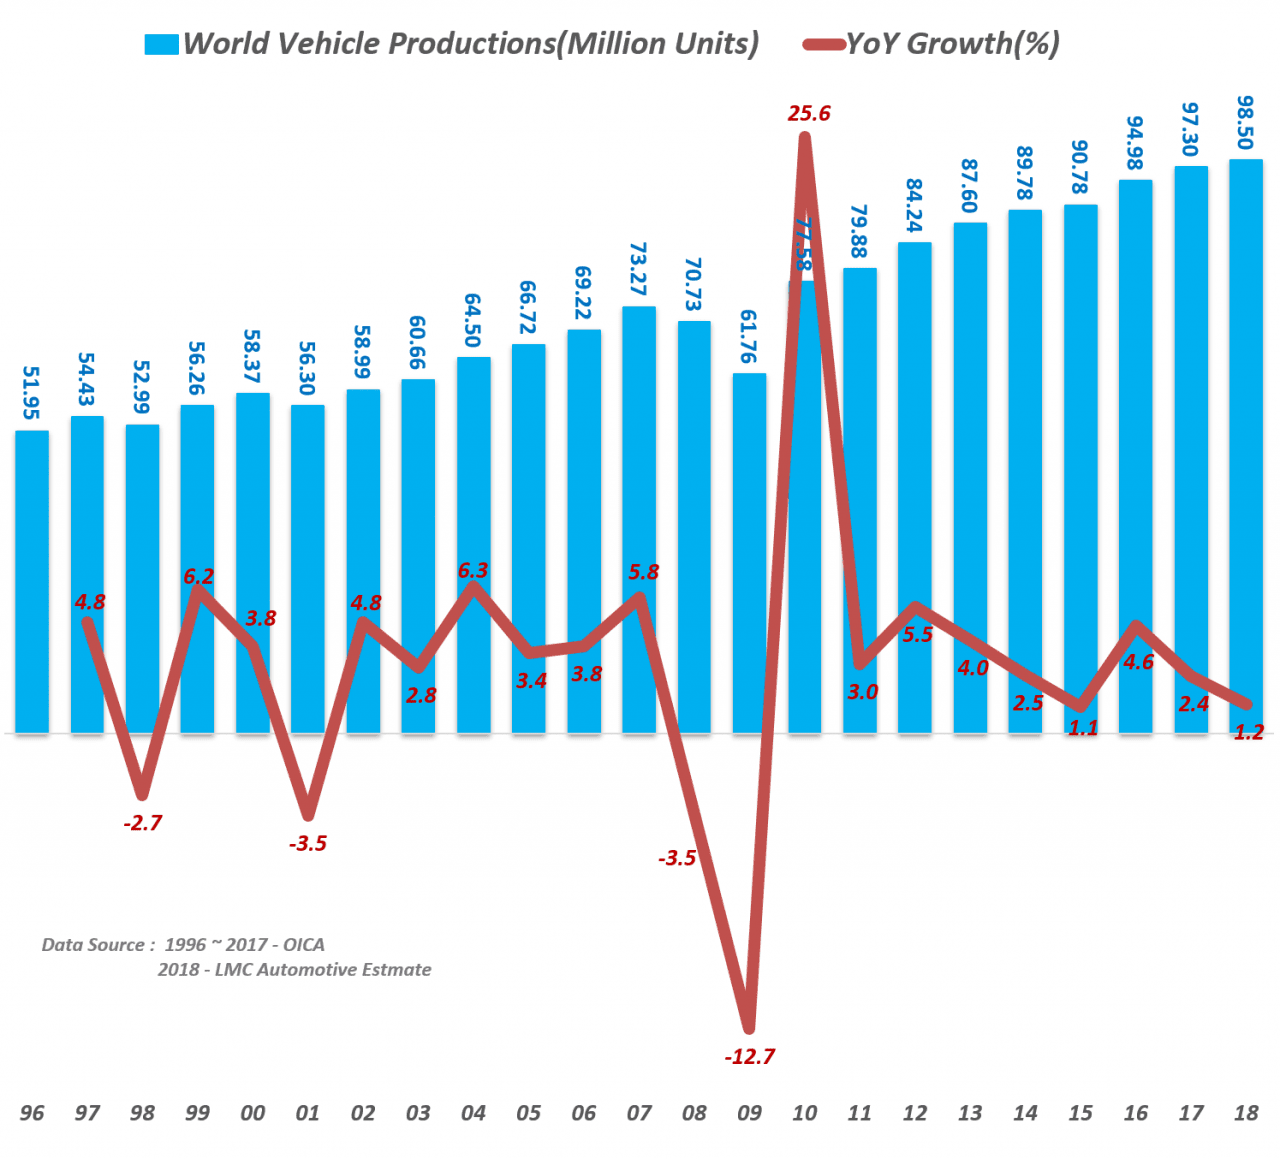 연도별 세계 자동차 생산량 추이(1996년 ~ 2018년), Yearly World Vehicle Productions(Million Units), Data Source - 1996 ~ 2017 - OICA & 2018 - LMC Automotive Estmate, Graph by Happist